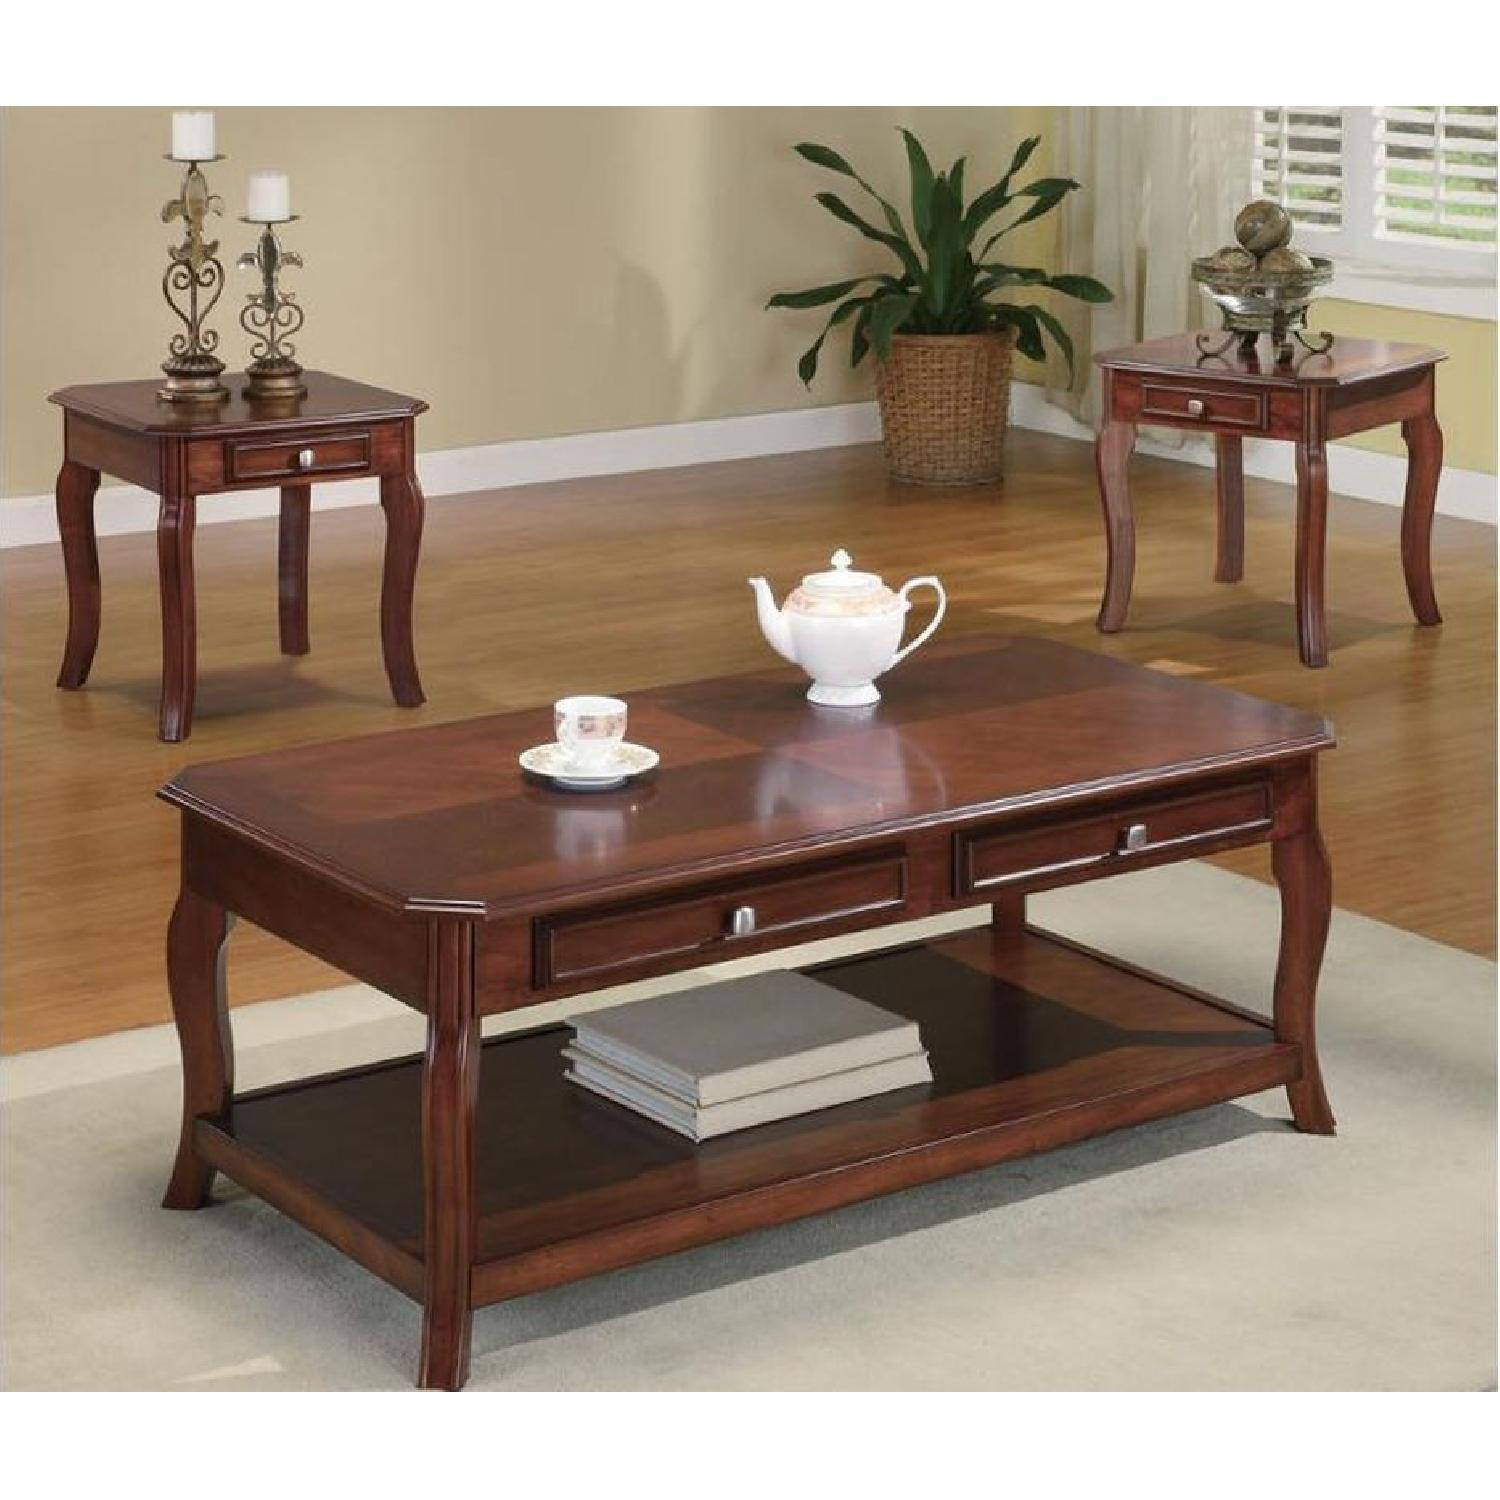 3-Piece Coffee & End Table Set in Warm Bourbon Finish - image-3